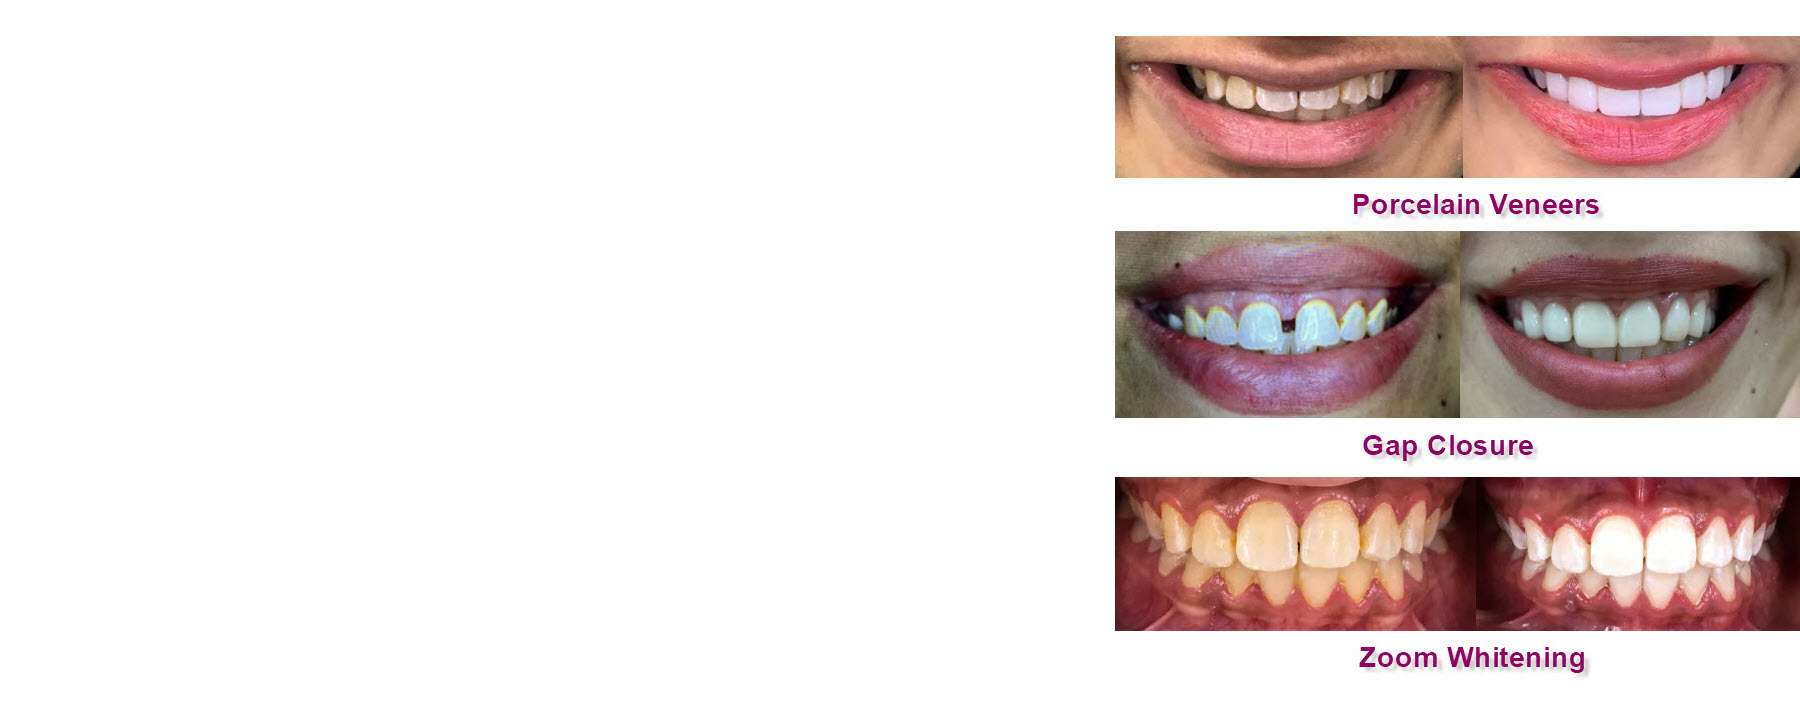 Dr. Kathuria's Dental Cases